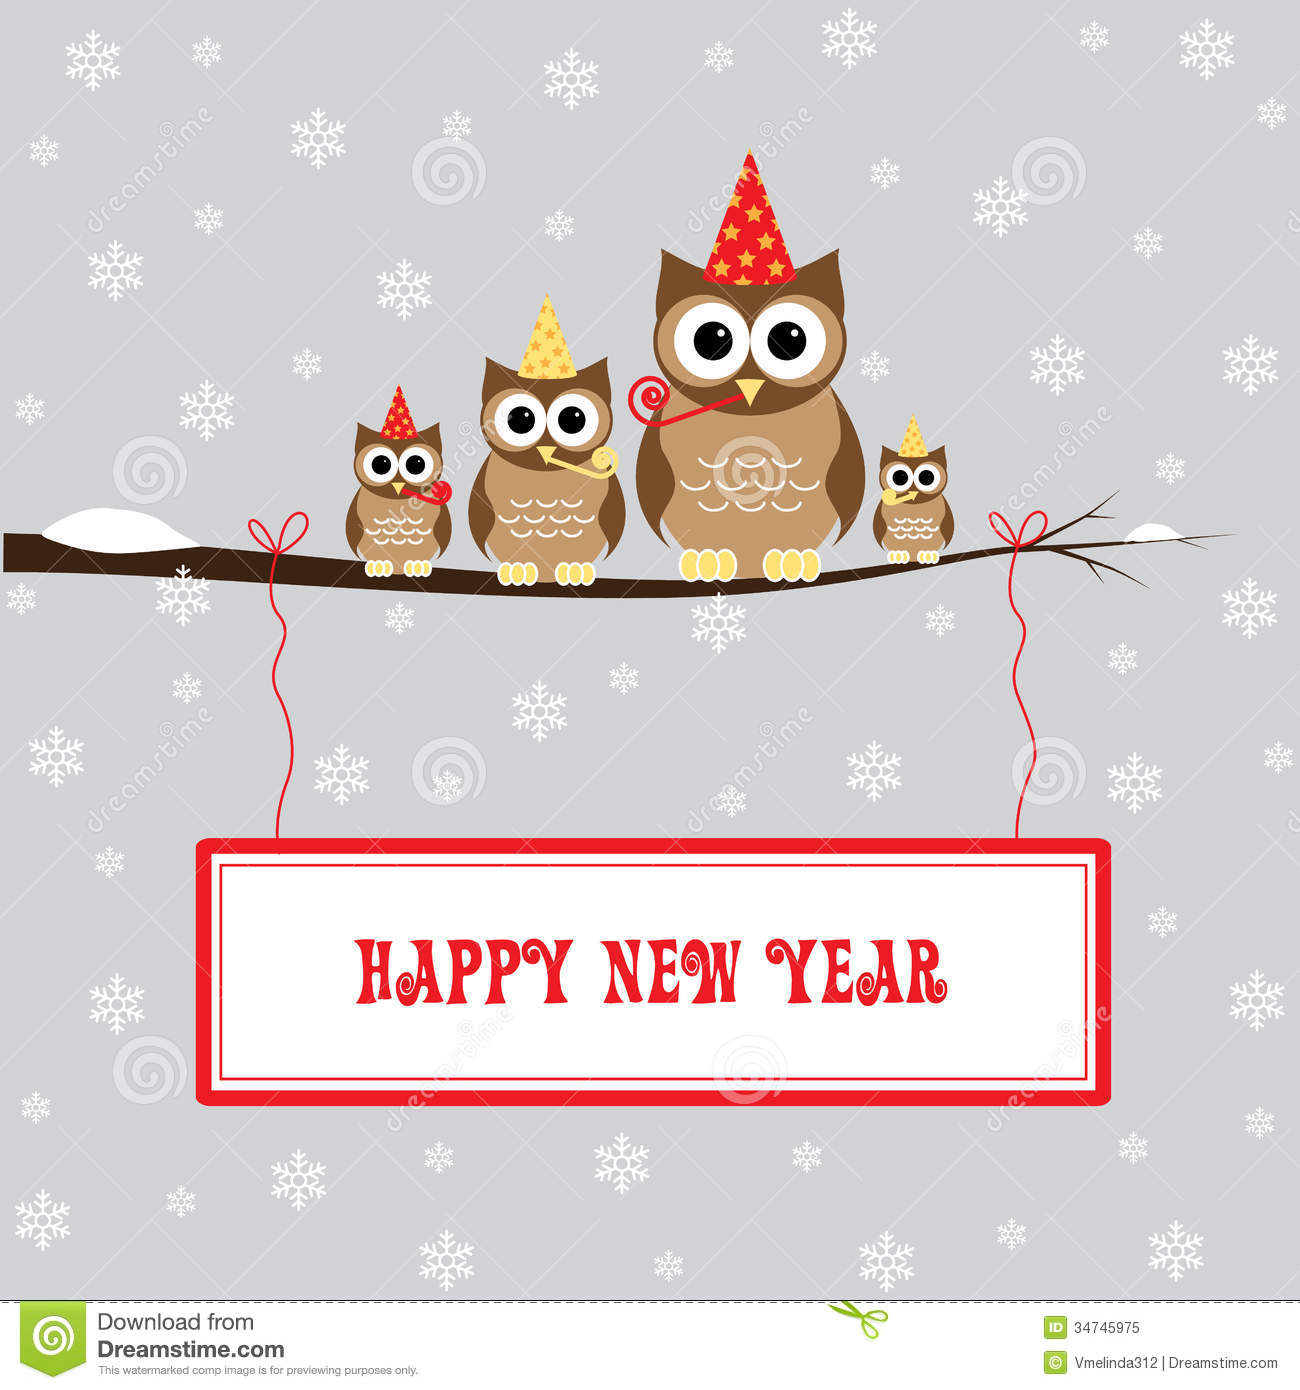 Happy New Year Royalty Free Stock Photo - Image: 34745975